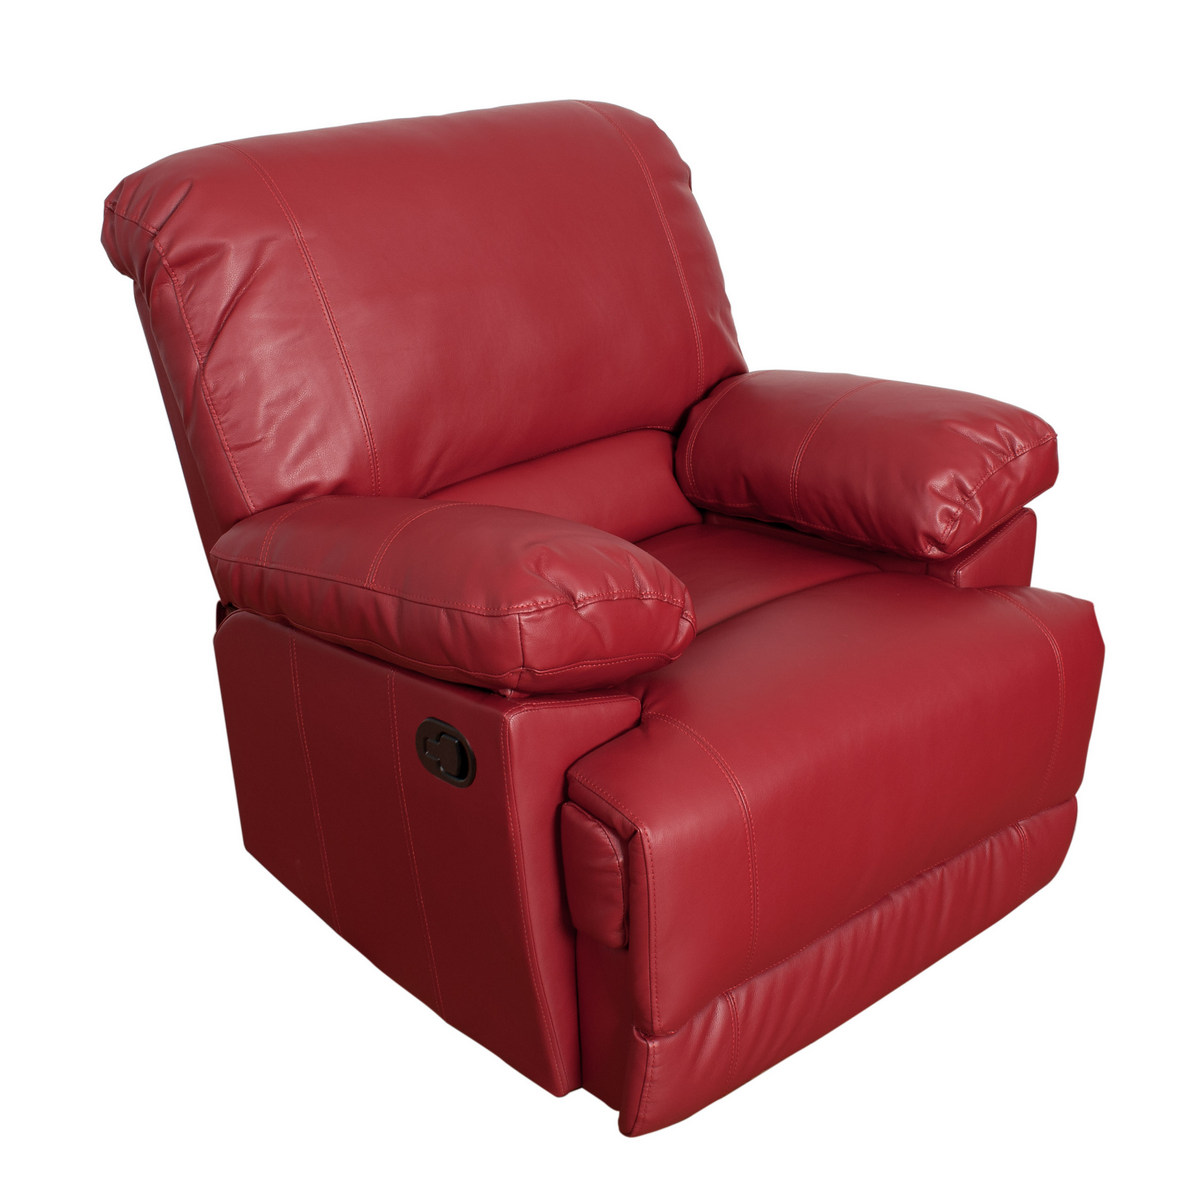 Corliving R Lea Red Bonded Leather Reclining Chair